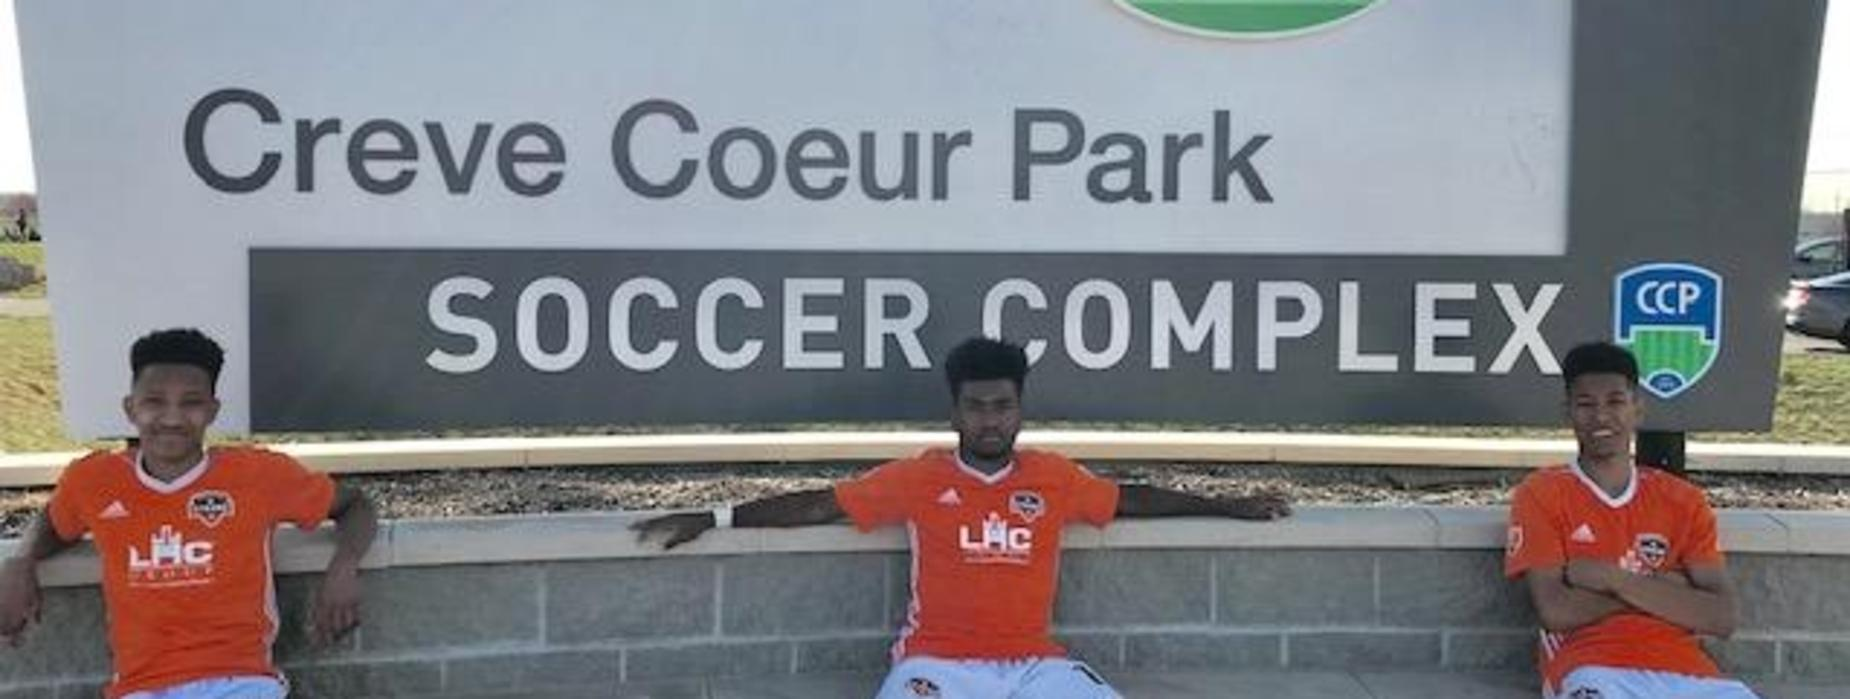 Devin Auzenne, Adrian Eaglin and Alexander Auzenne competed with Dynamo Junior Soccer Club in St. Louis, Missouri.